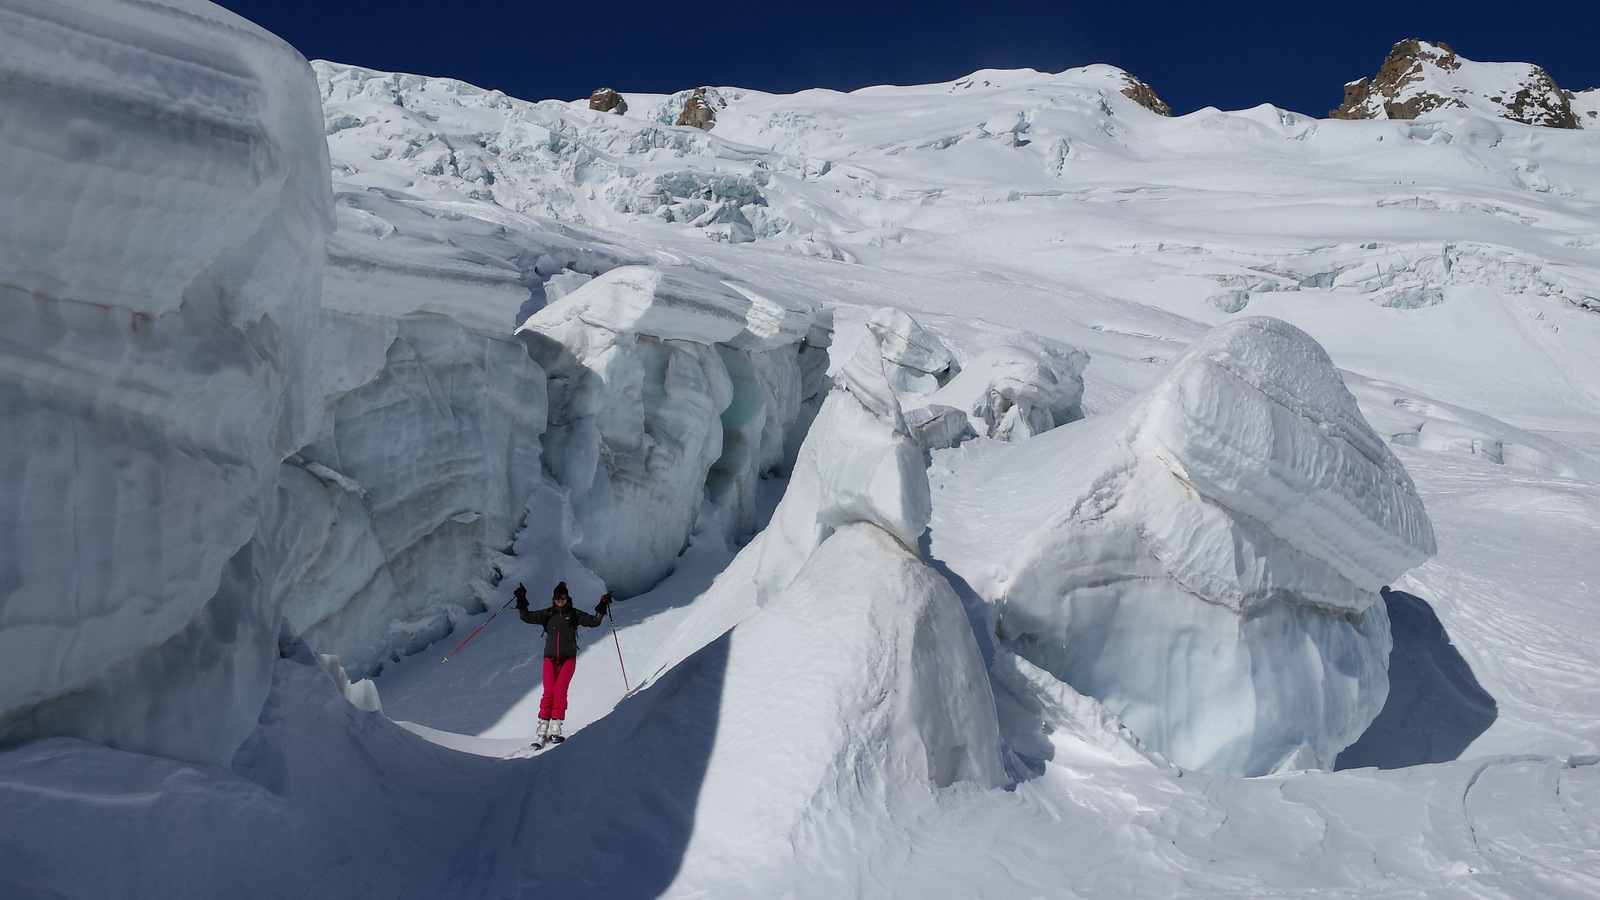 vraie vallee blanche